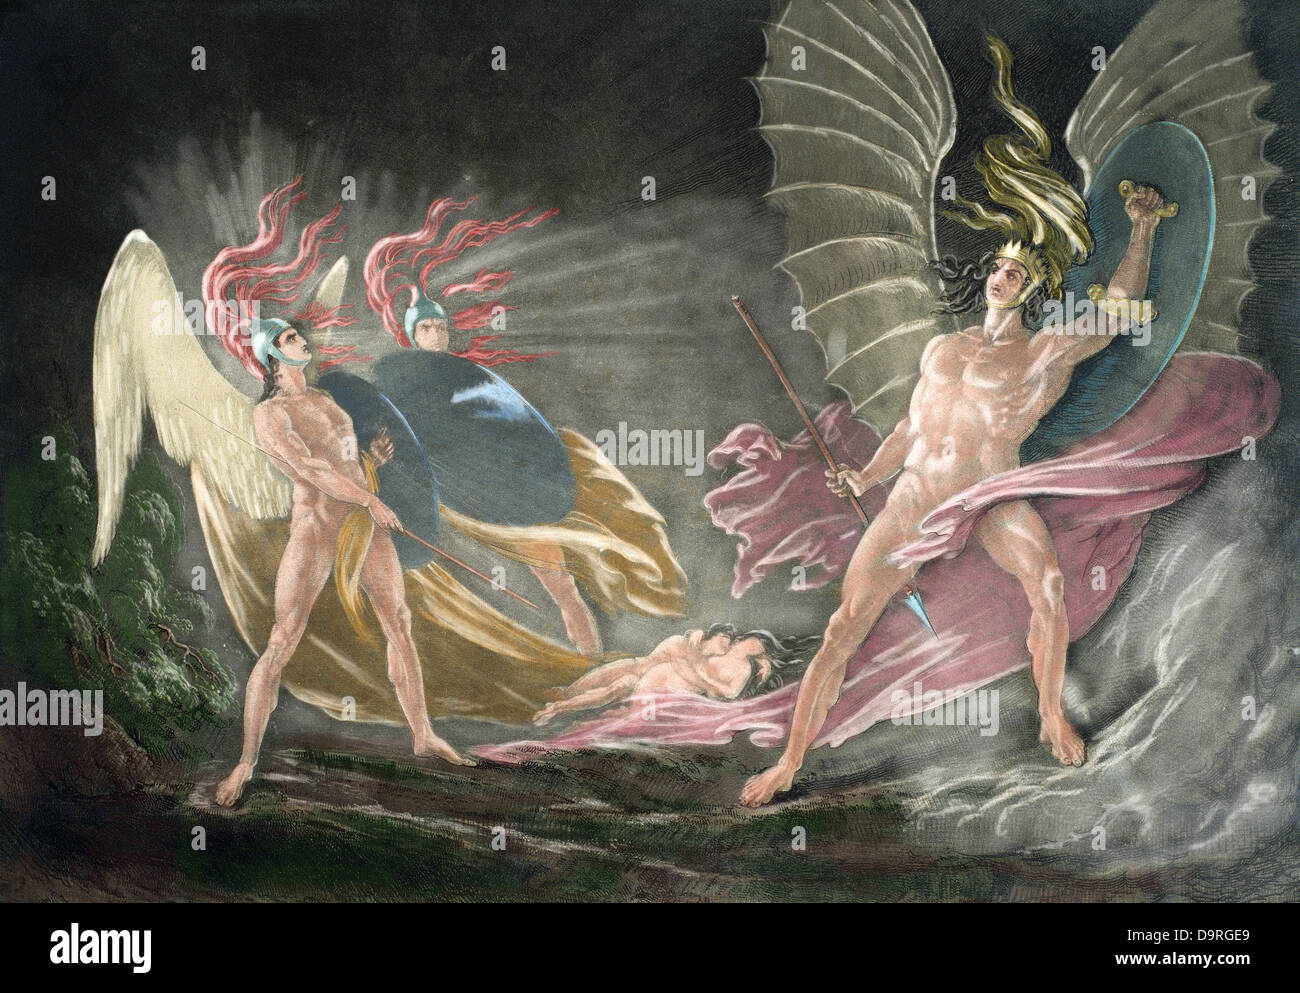 John Milton (1608-1674). British poet. Paradise Lost. 1658-1667. Satan tempts Eve in the dream. Engraving. Colored. - Stock Image